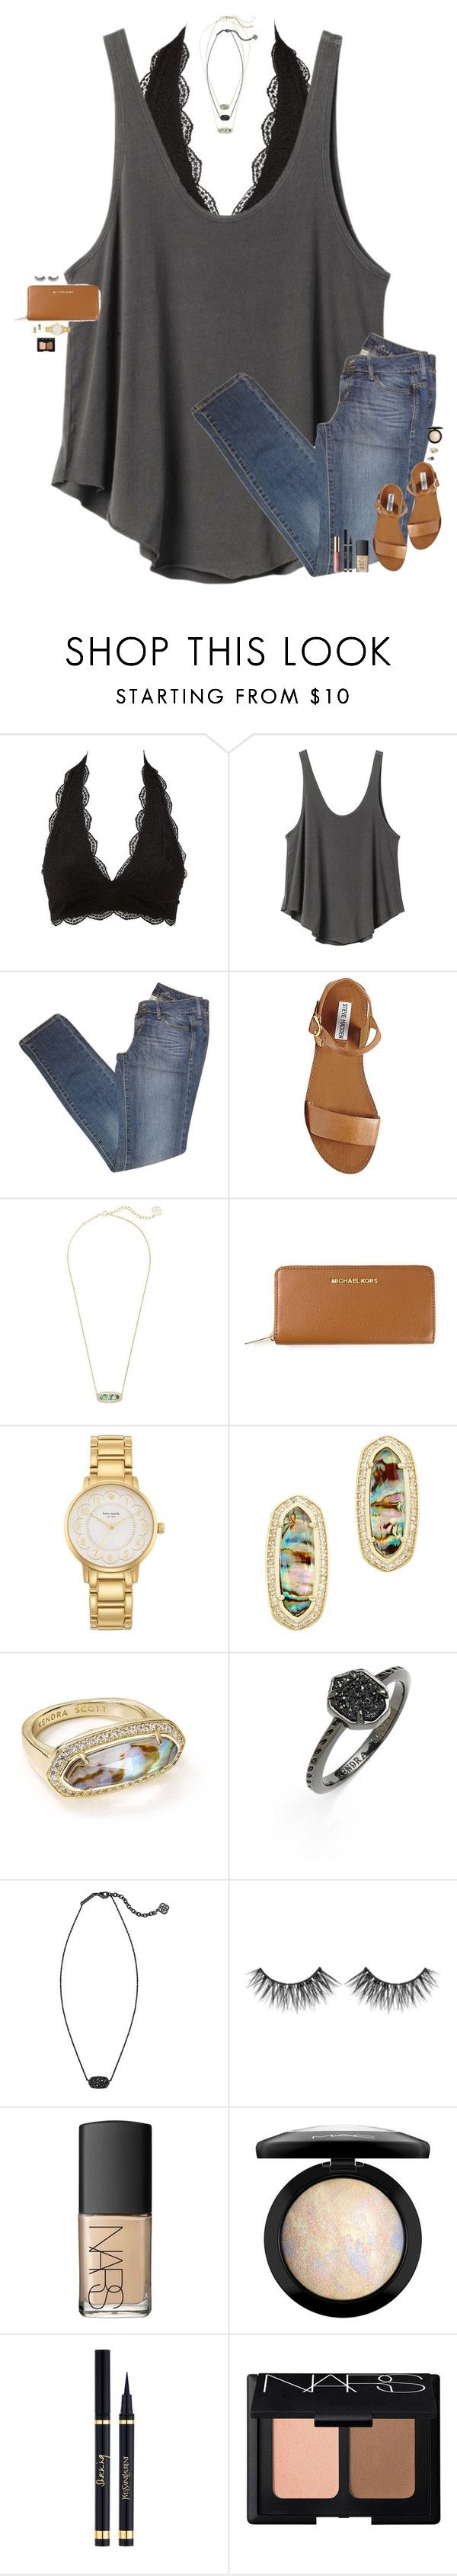 """""""•Being alone is better than being with the wrong person•"""" by maggie-prep ❤ liked on Polyvore featuring Charlotte Russe, RVCA, MANGO, Steve Madden, Kendra Scott, MICHAEL Michael Kors, Kate Spade, Huda Beauty, NARS Cosmetics and MAC Cosmetics"""